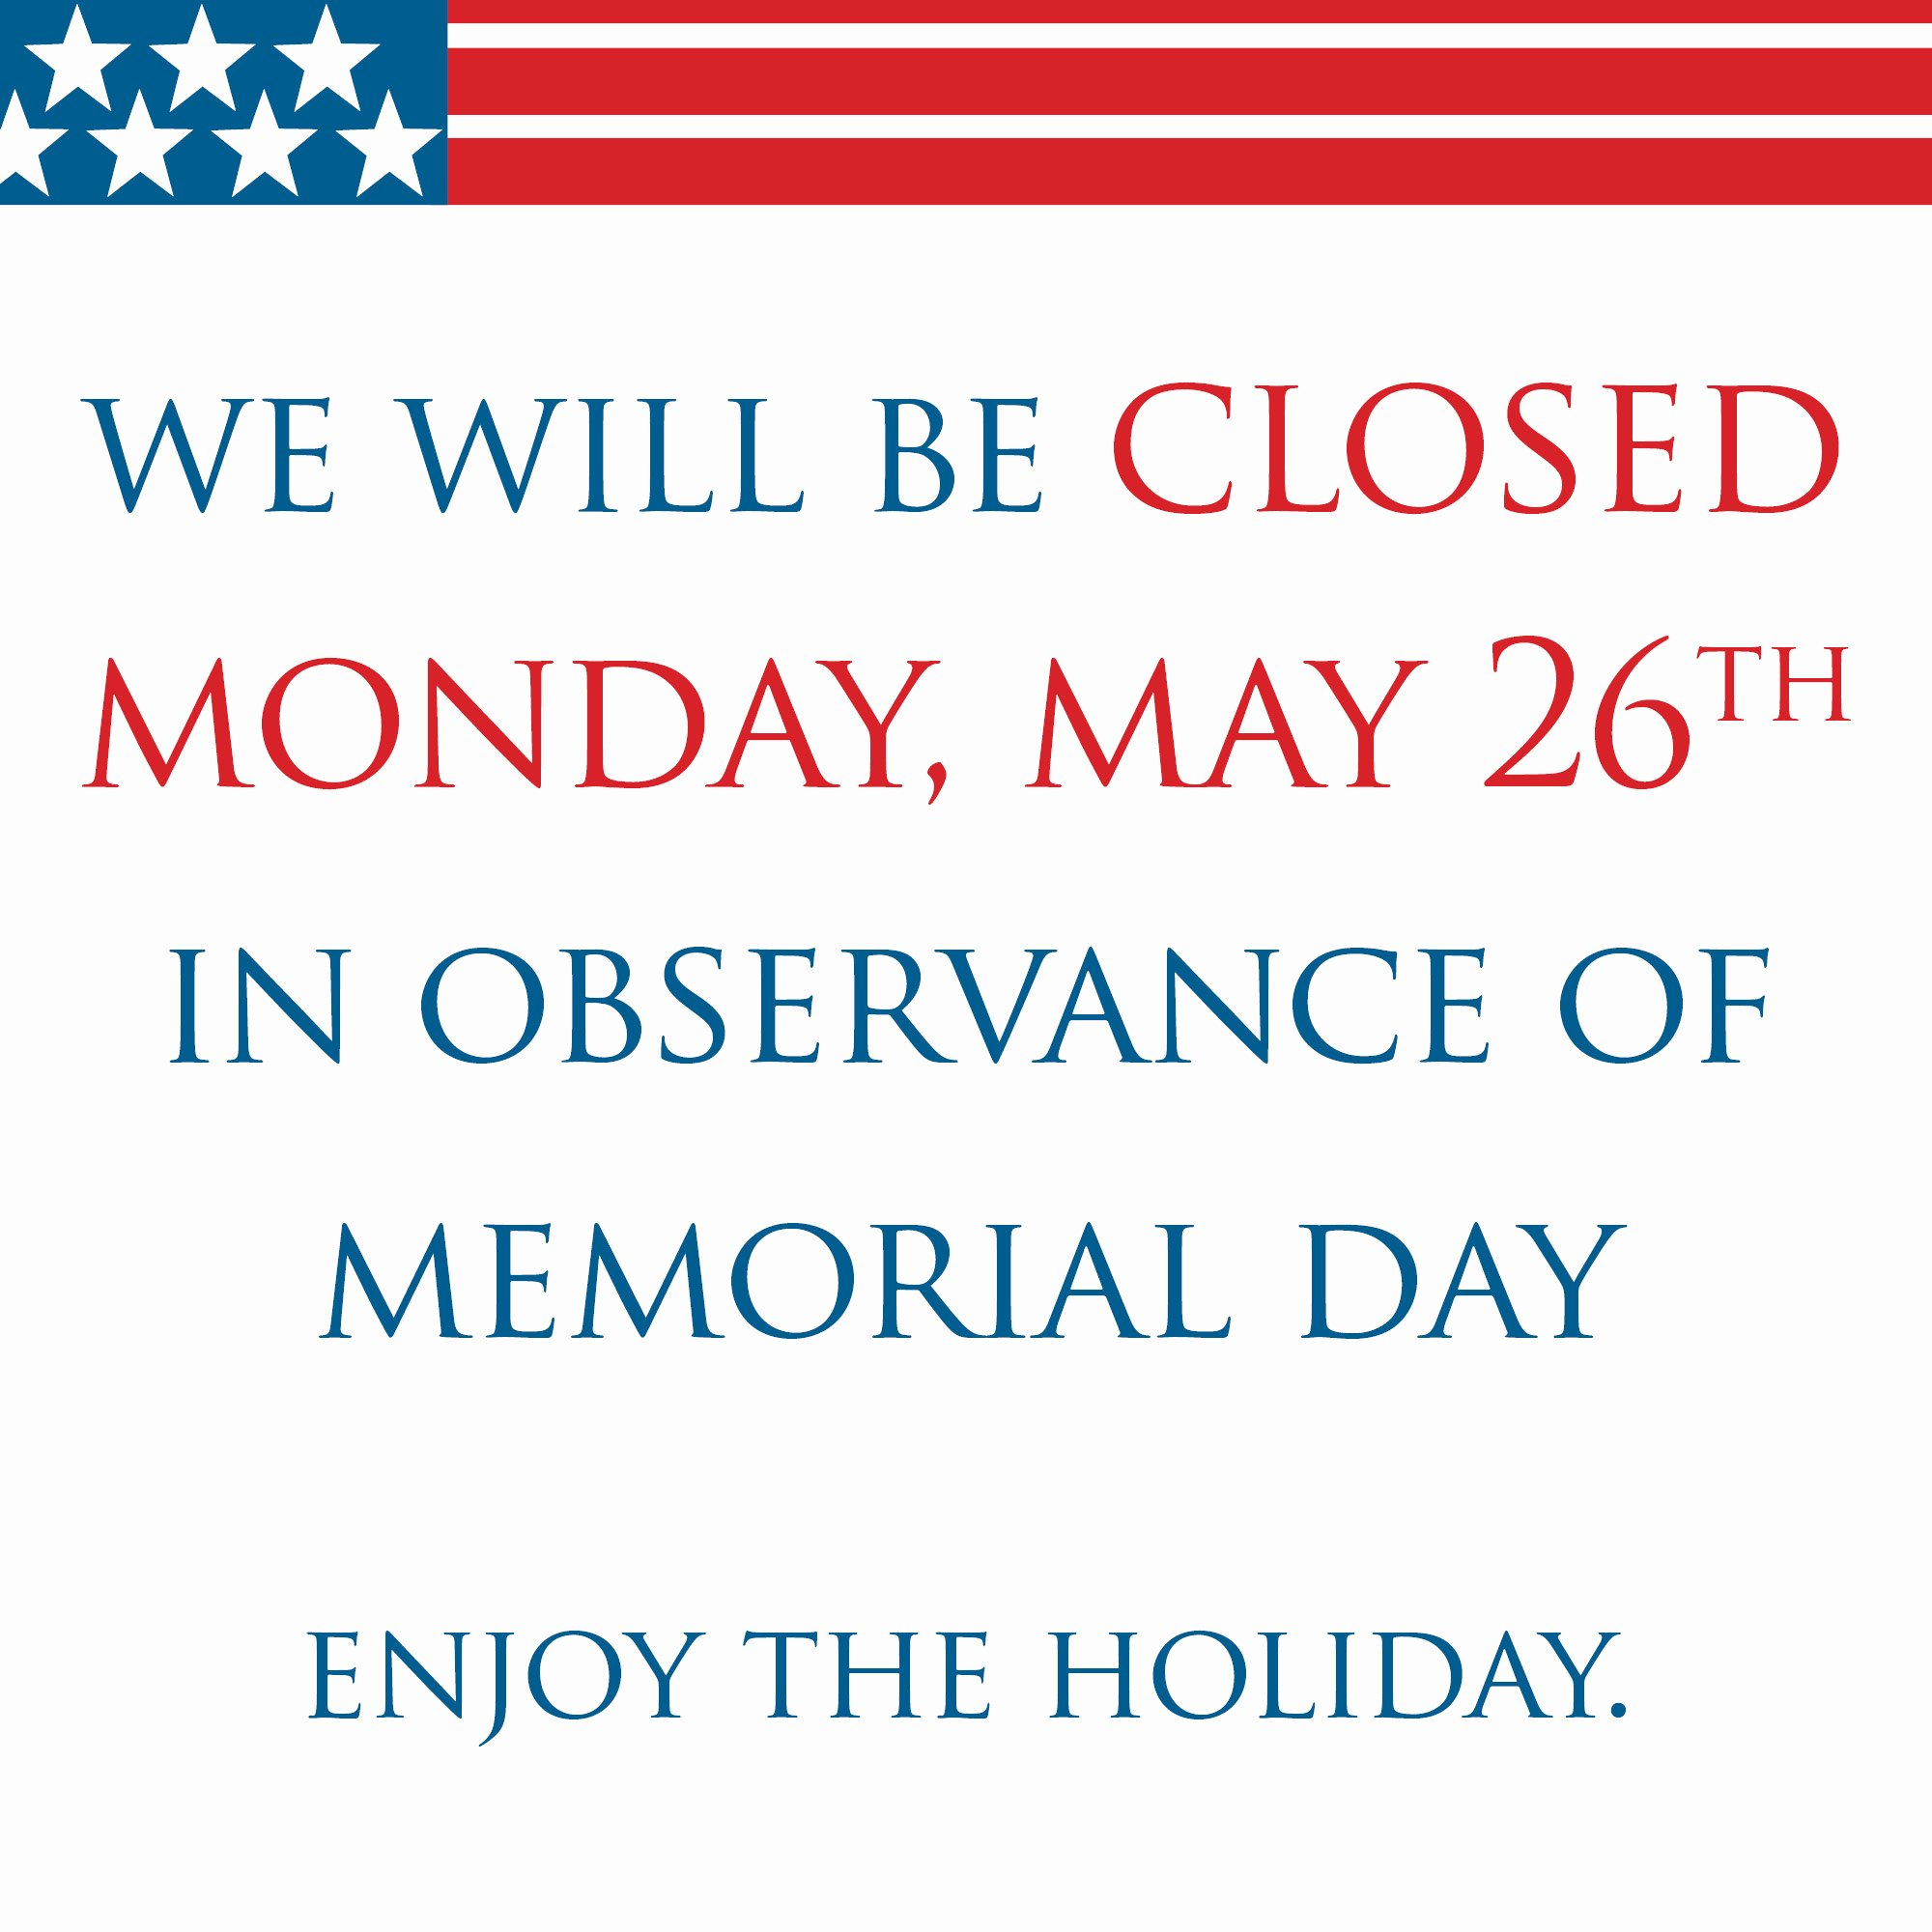 Memorial Day Closed Sign Template Elegant Closed Memorial Day Sign Printable – Free Download